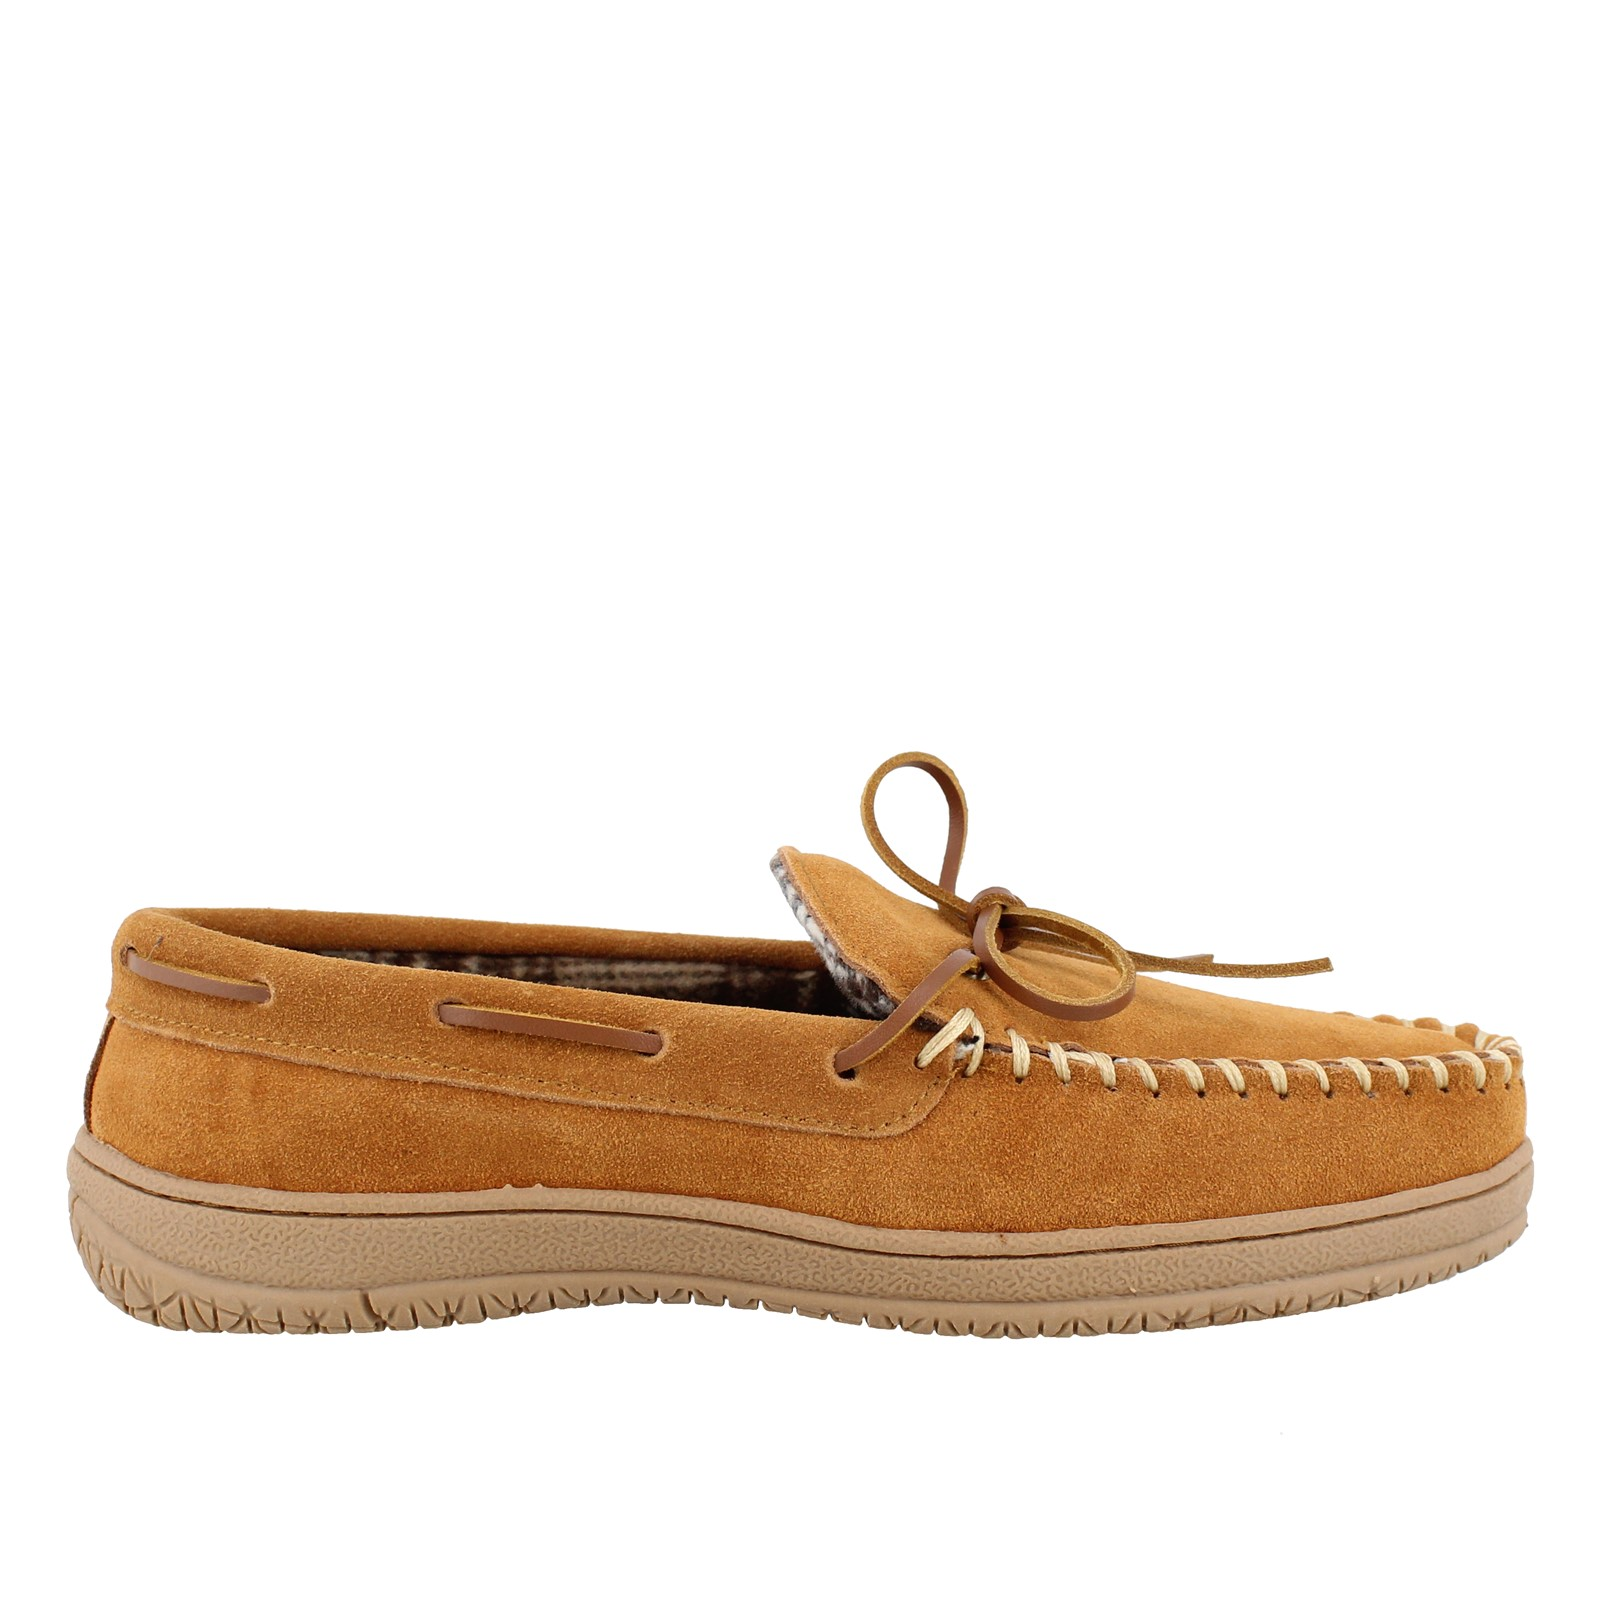 Men's Clarks, Moccasin Fleece-Lined Slipper